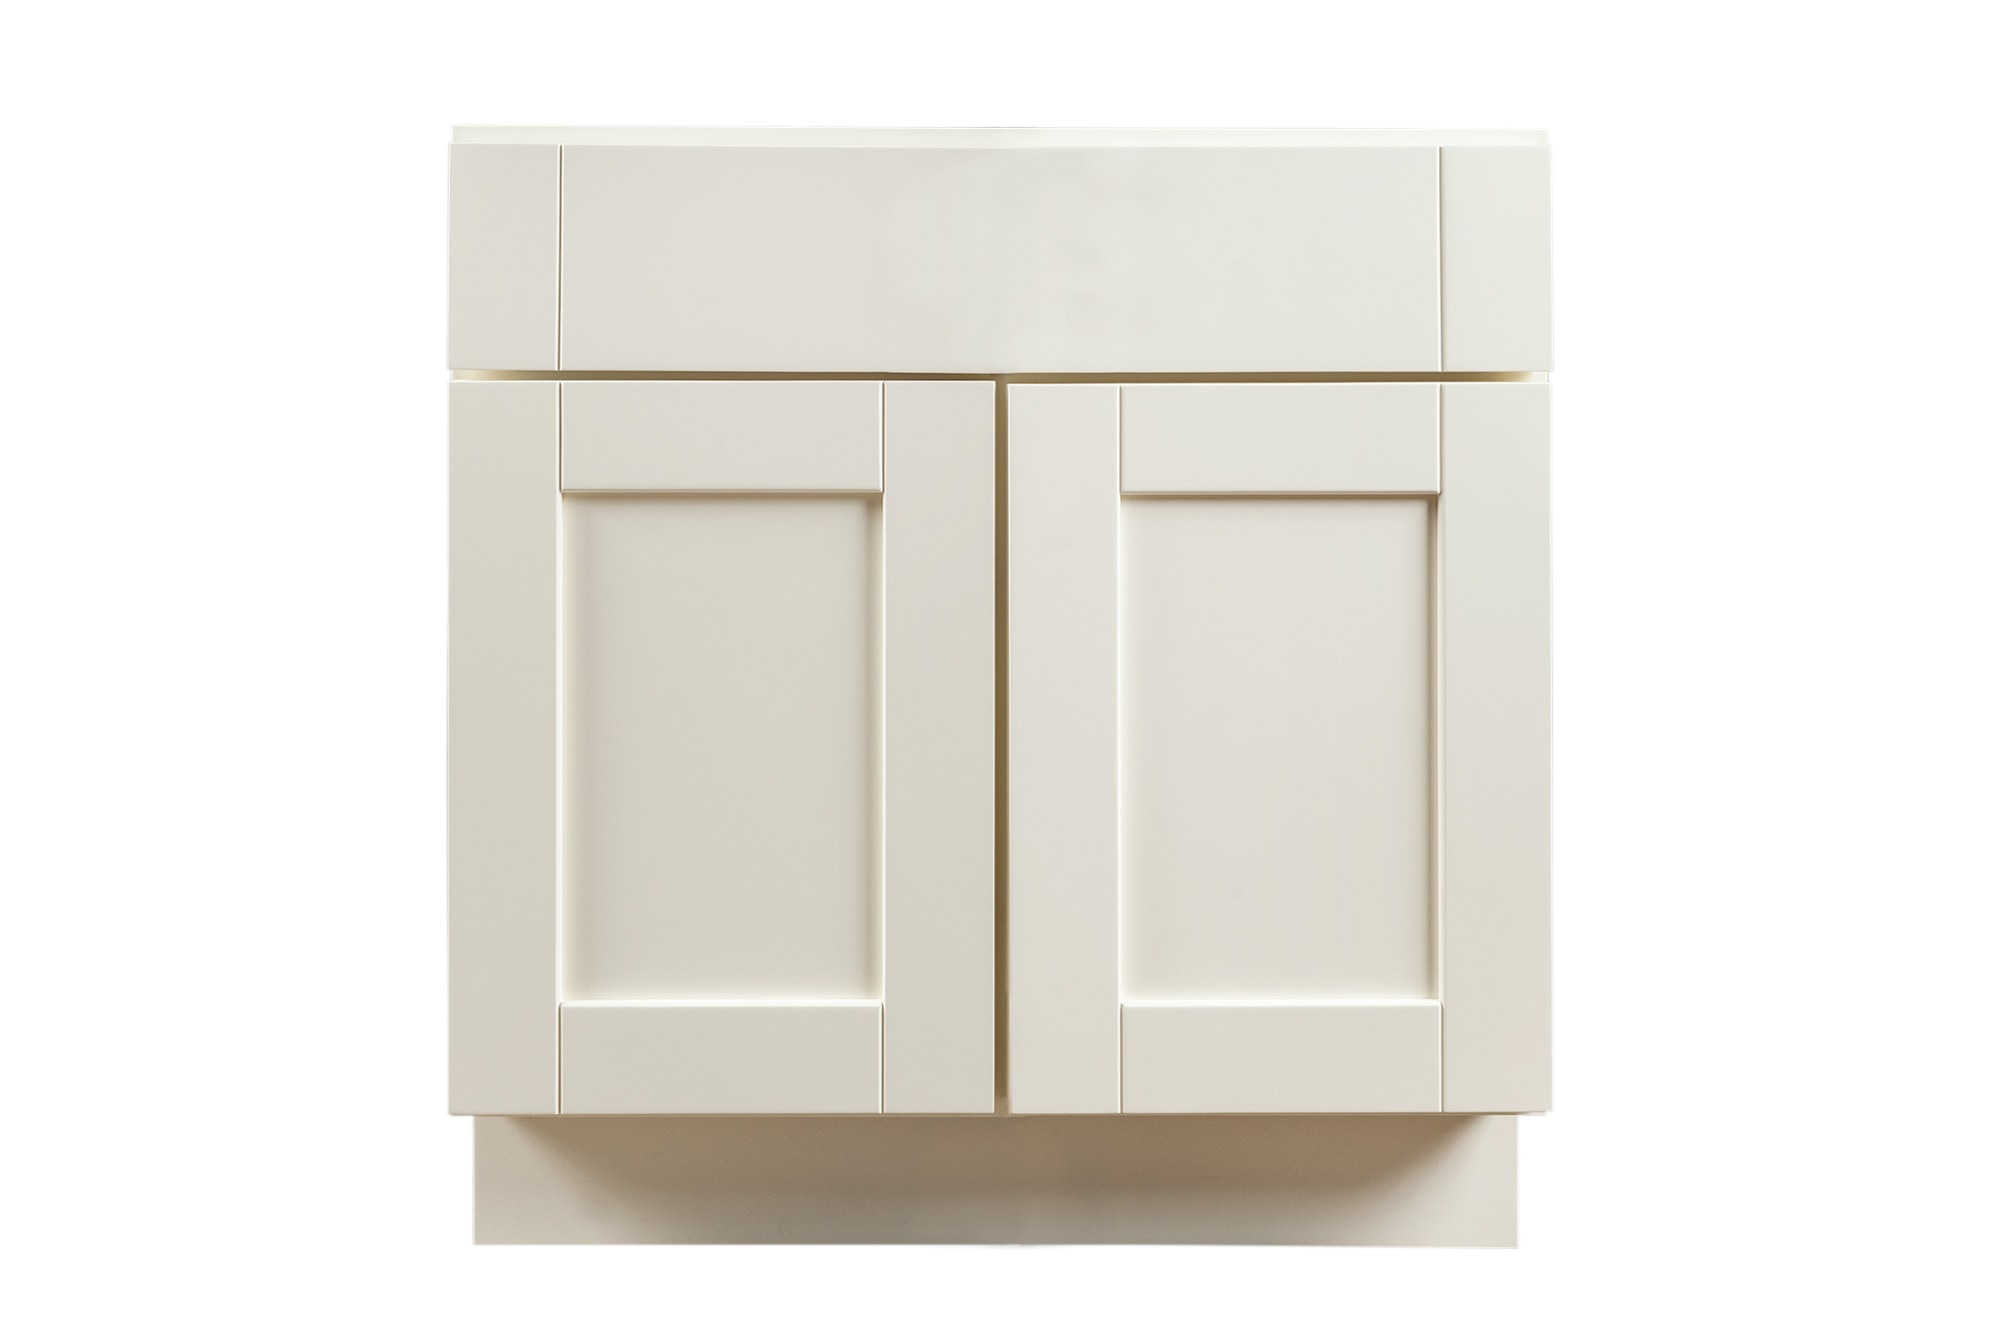 Bathroom Vanity 24 X 21 grafton bathroom vanity cabinets - craftsman collection white / 36